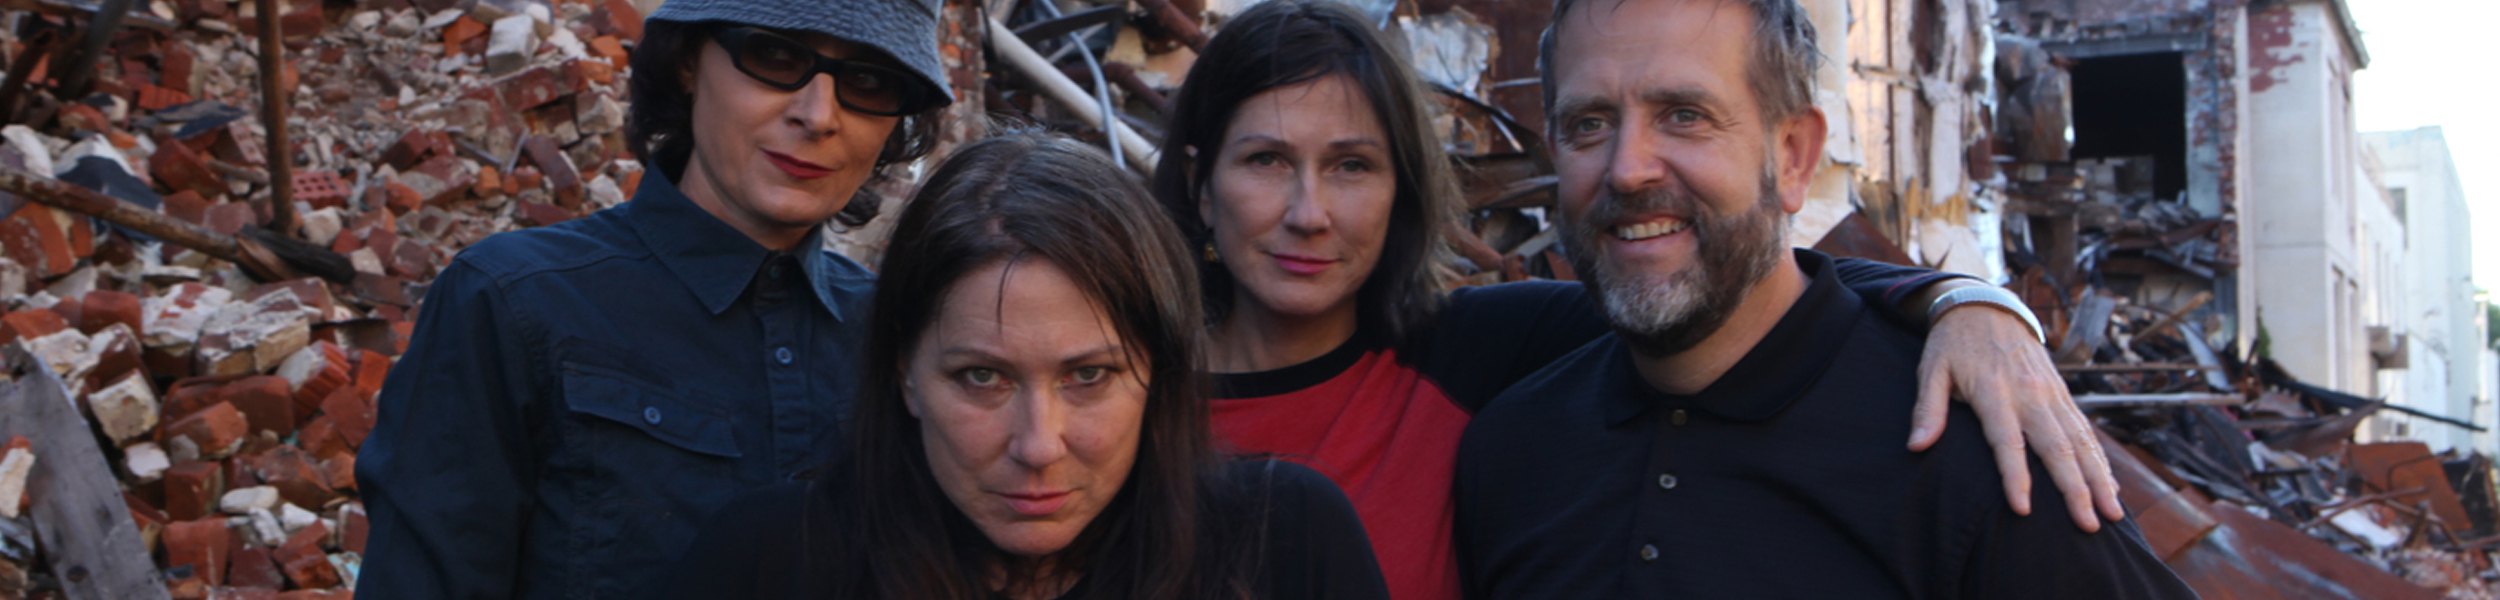 The Breeders - The Breeders Add UK Dates To Last Splash 20th Anniversary Tour